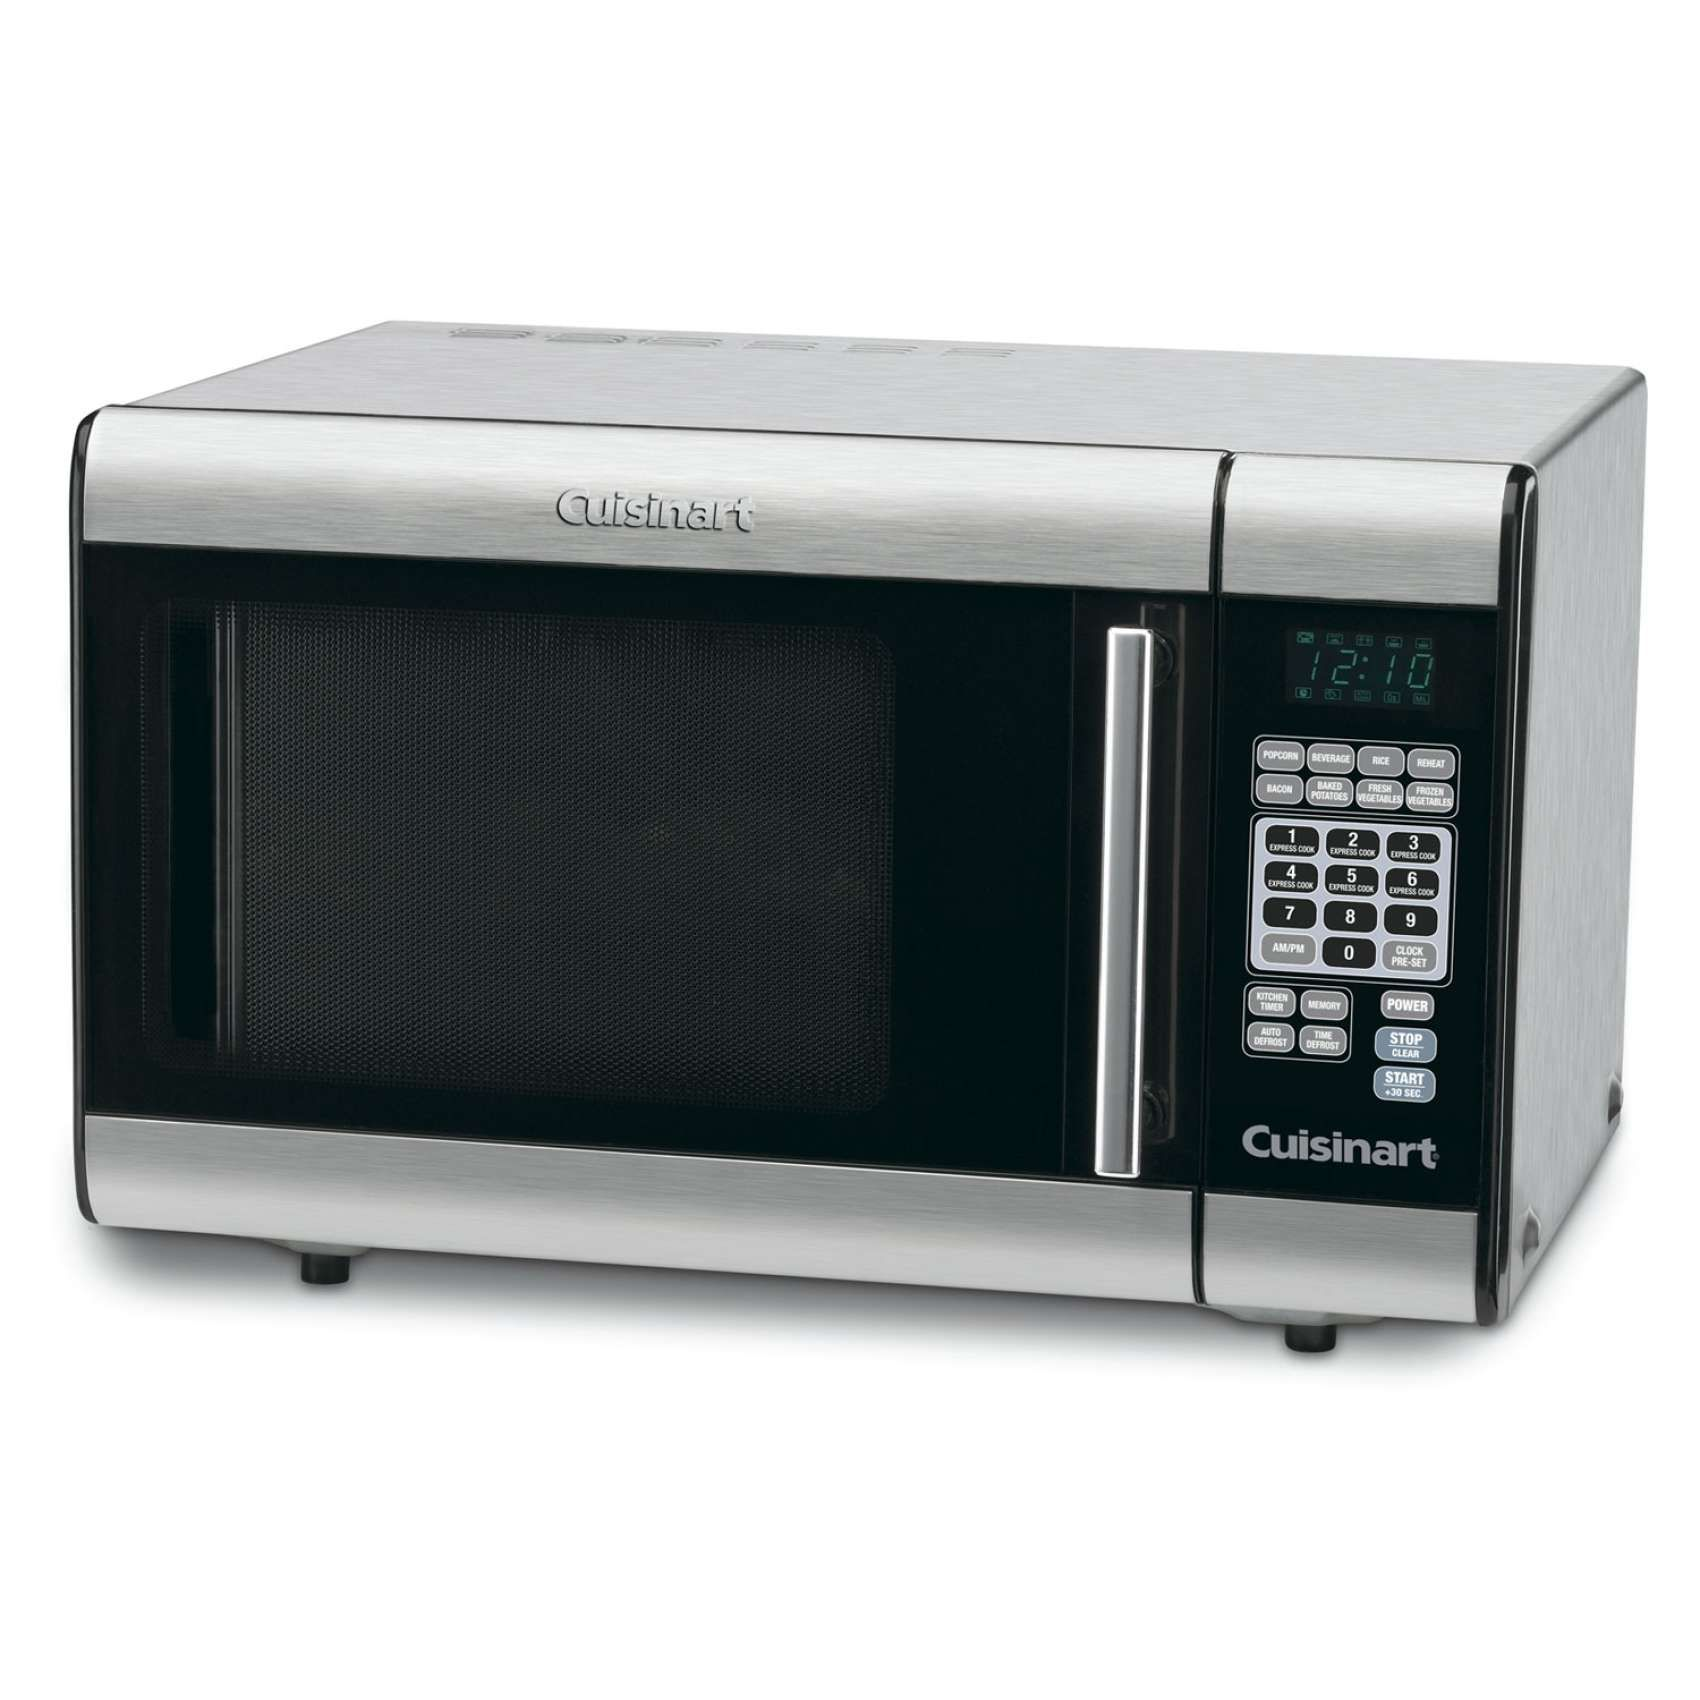 Cuisinart Stainless Steel Microwave Oven Kitchen Appliances